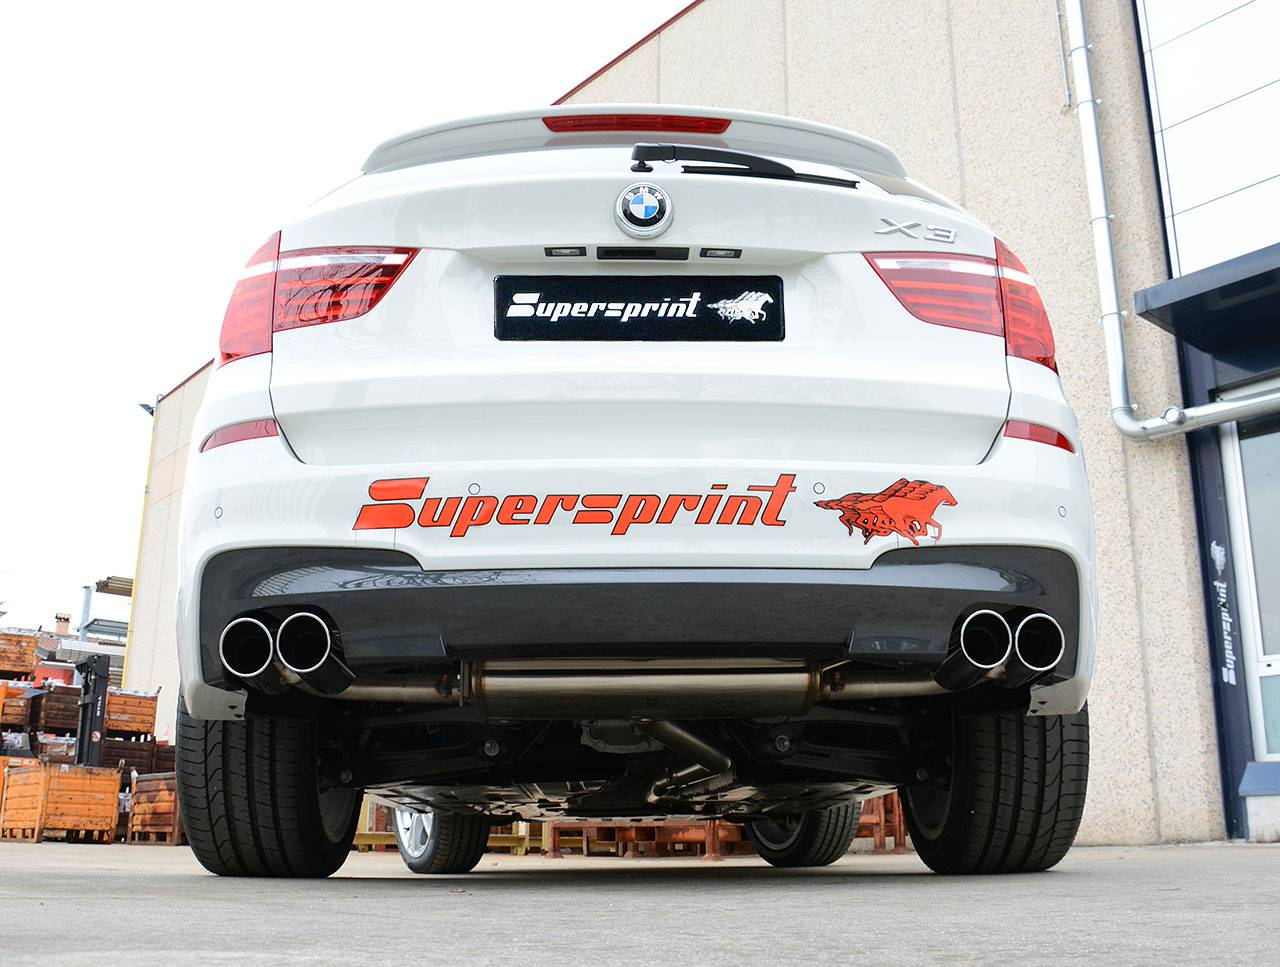 Posteriore Supersprint 986026 su BMW F25 X3 20d